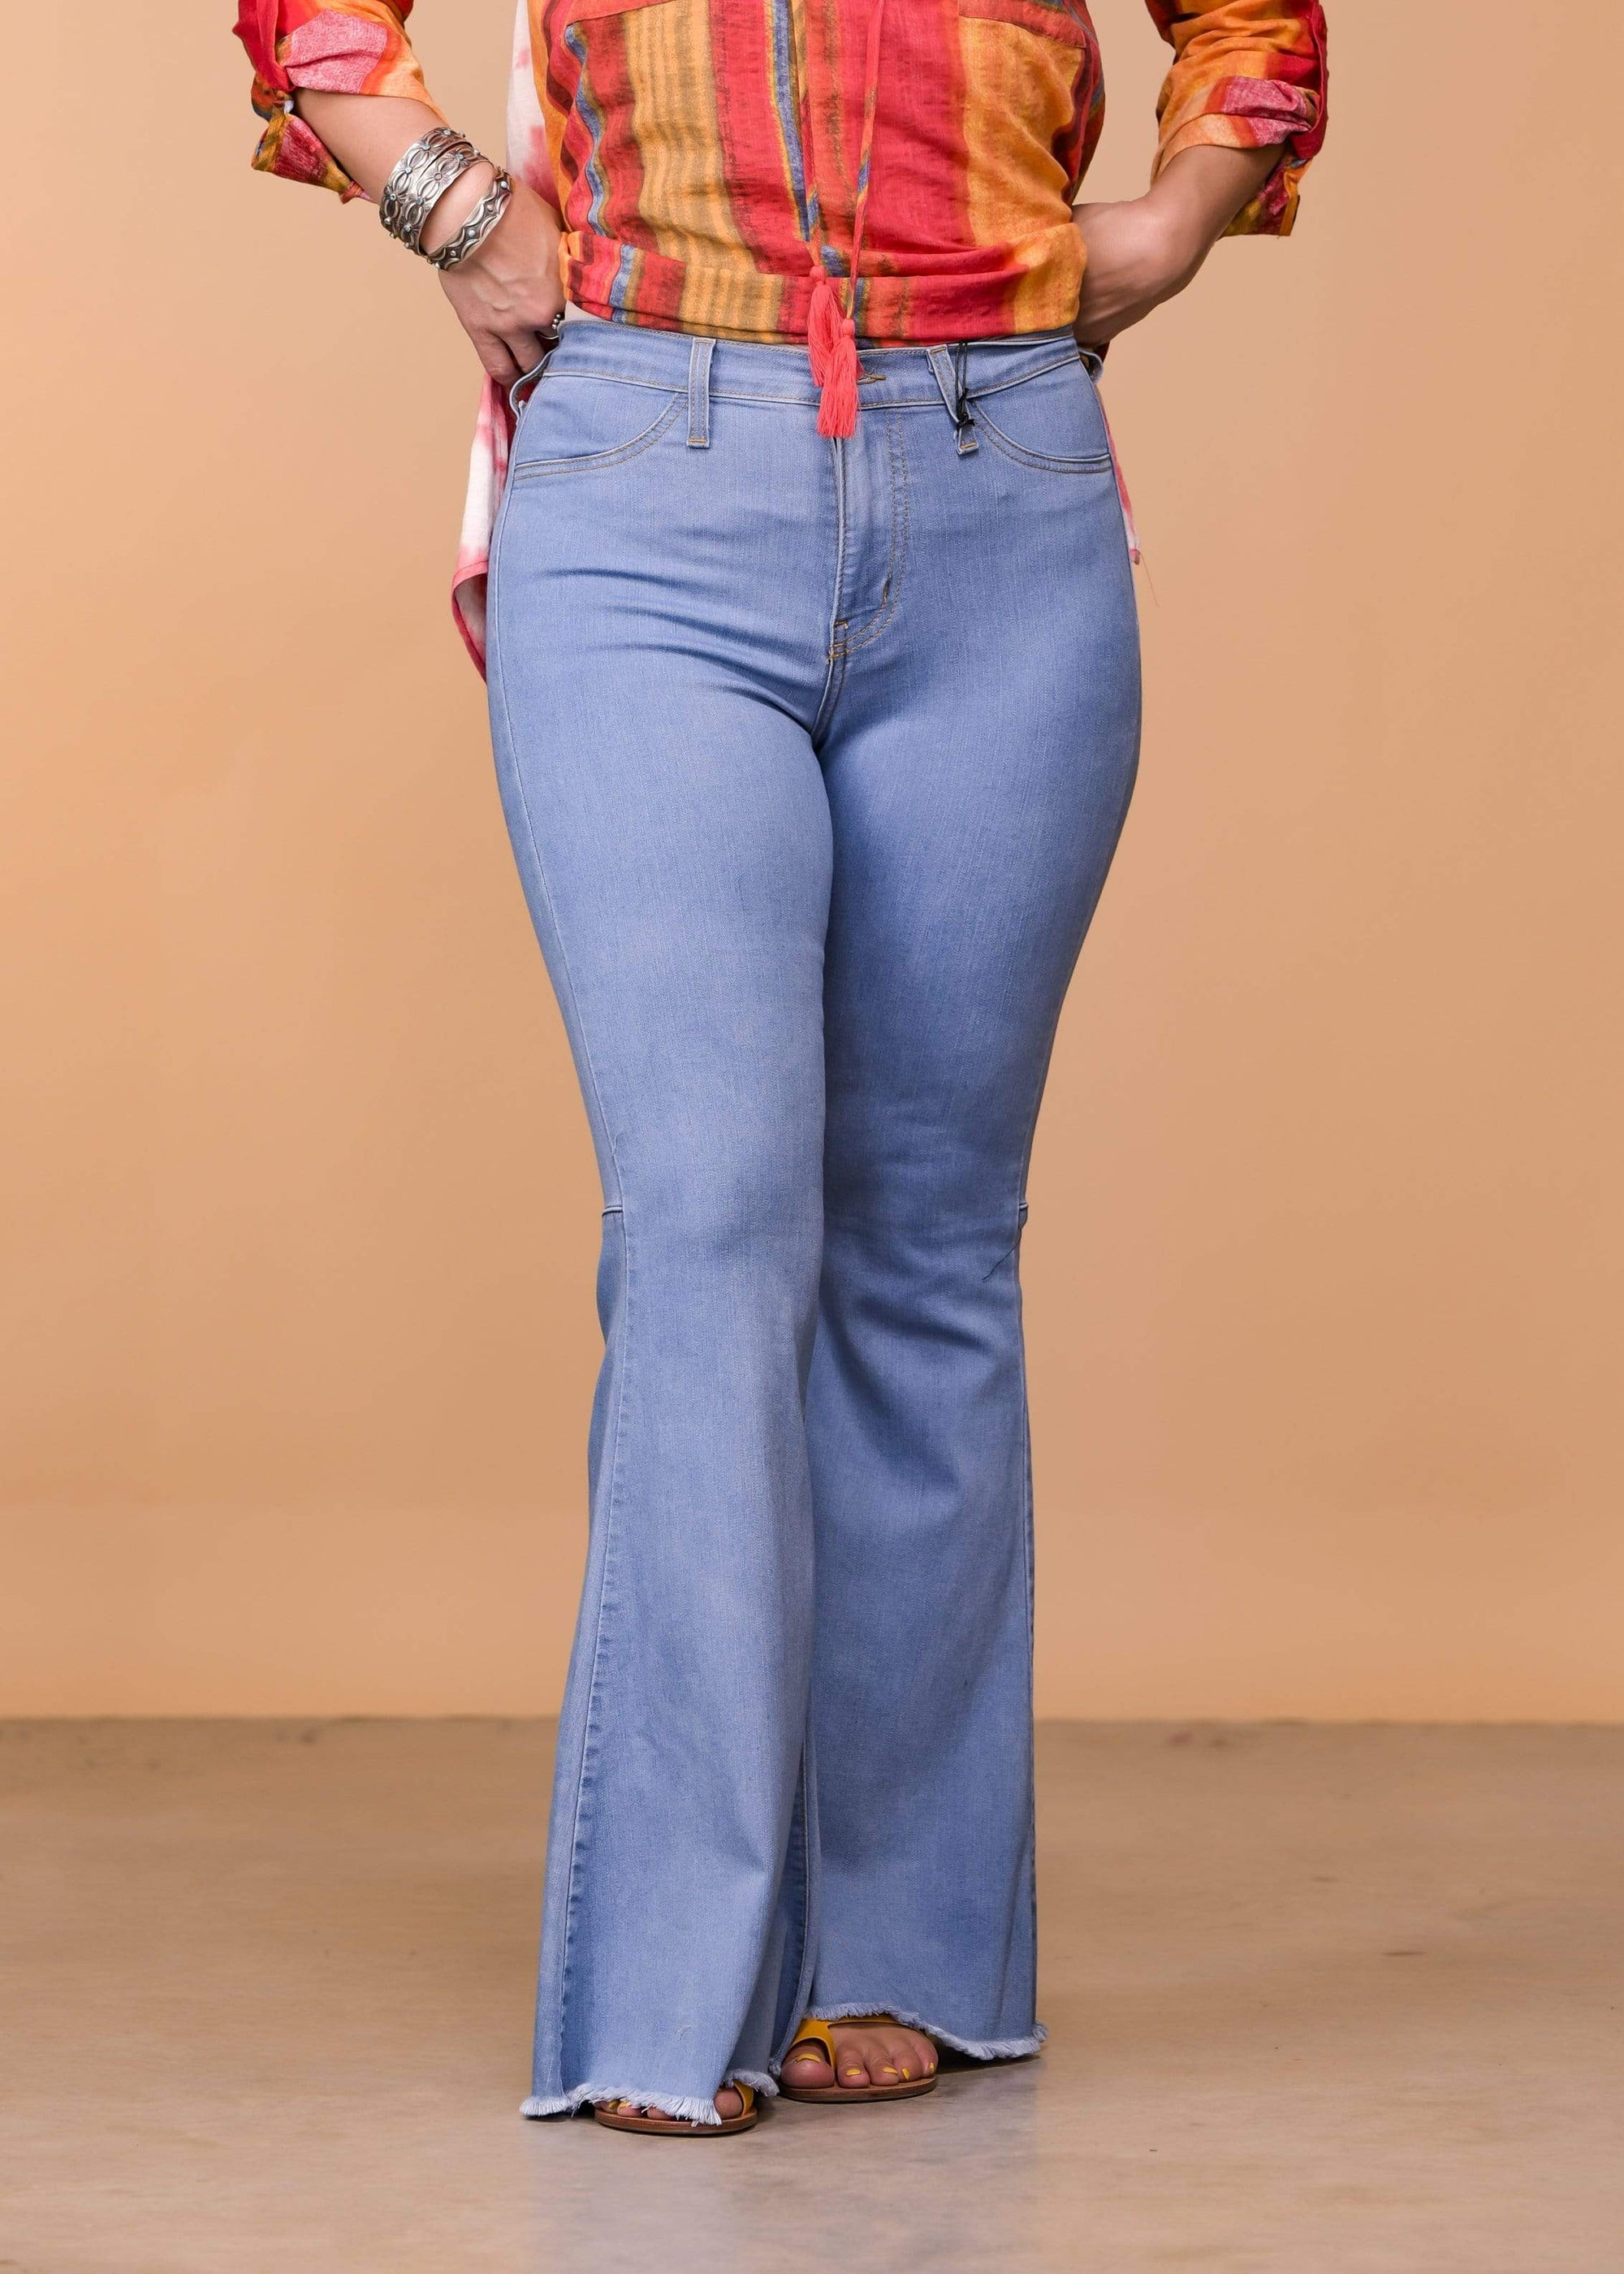 Judy Blue Full Length Hi Waist Super Flare - Light Wash